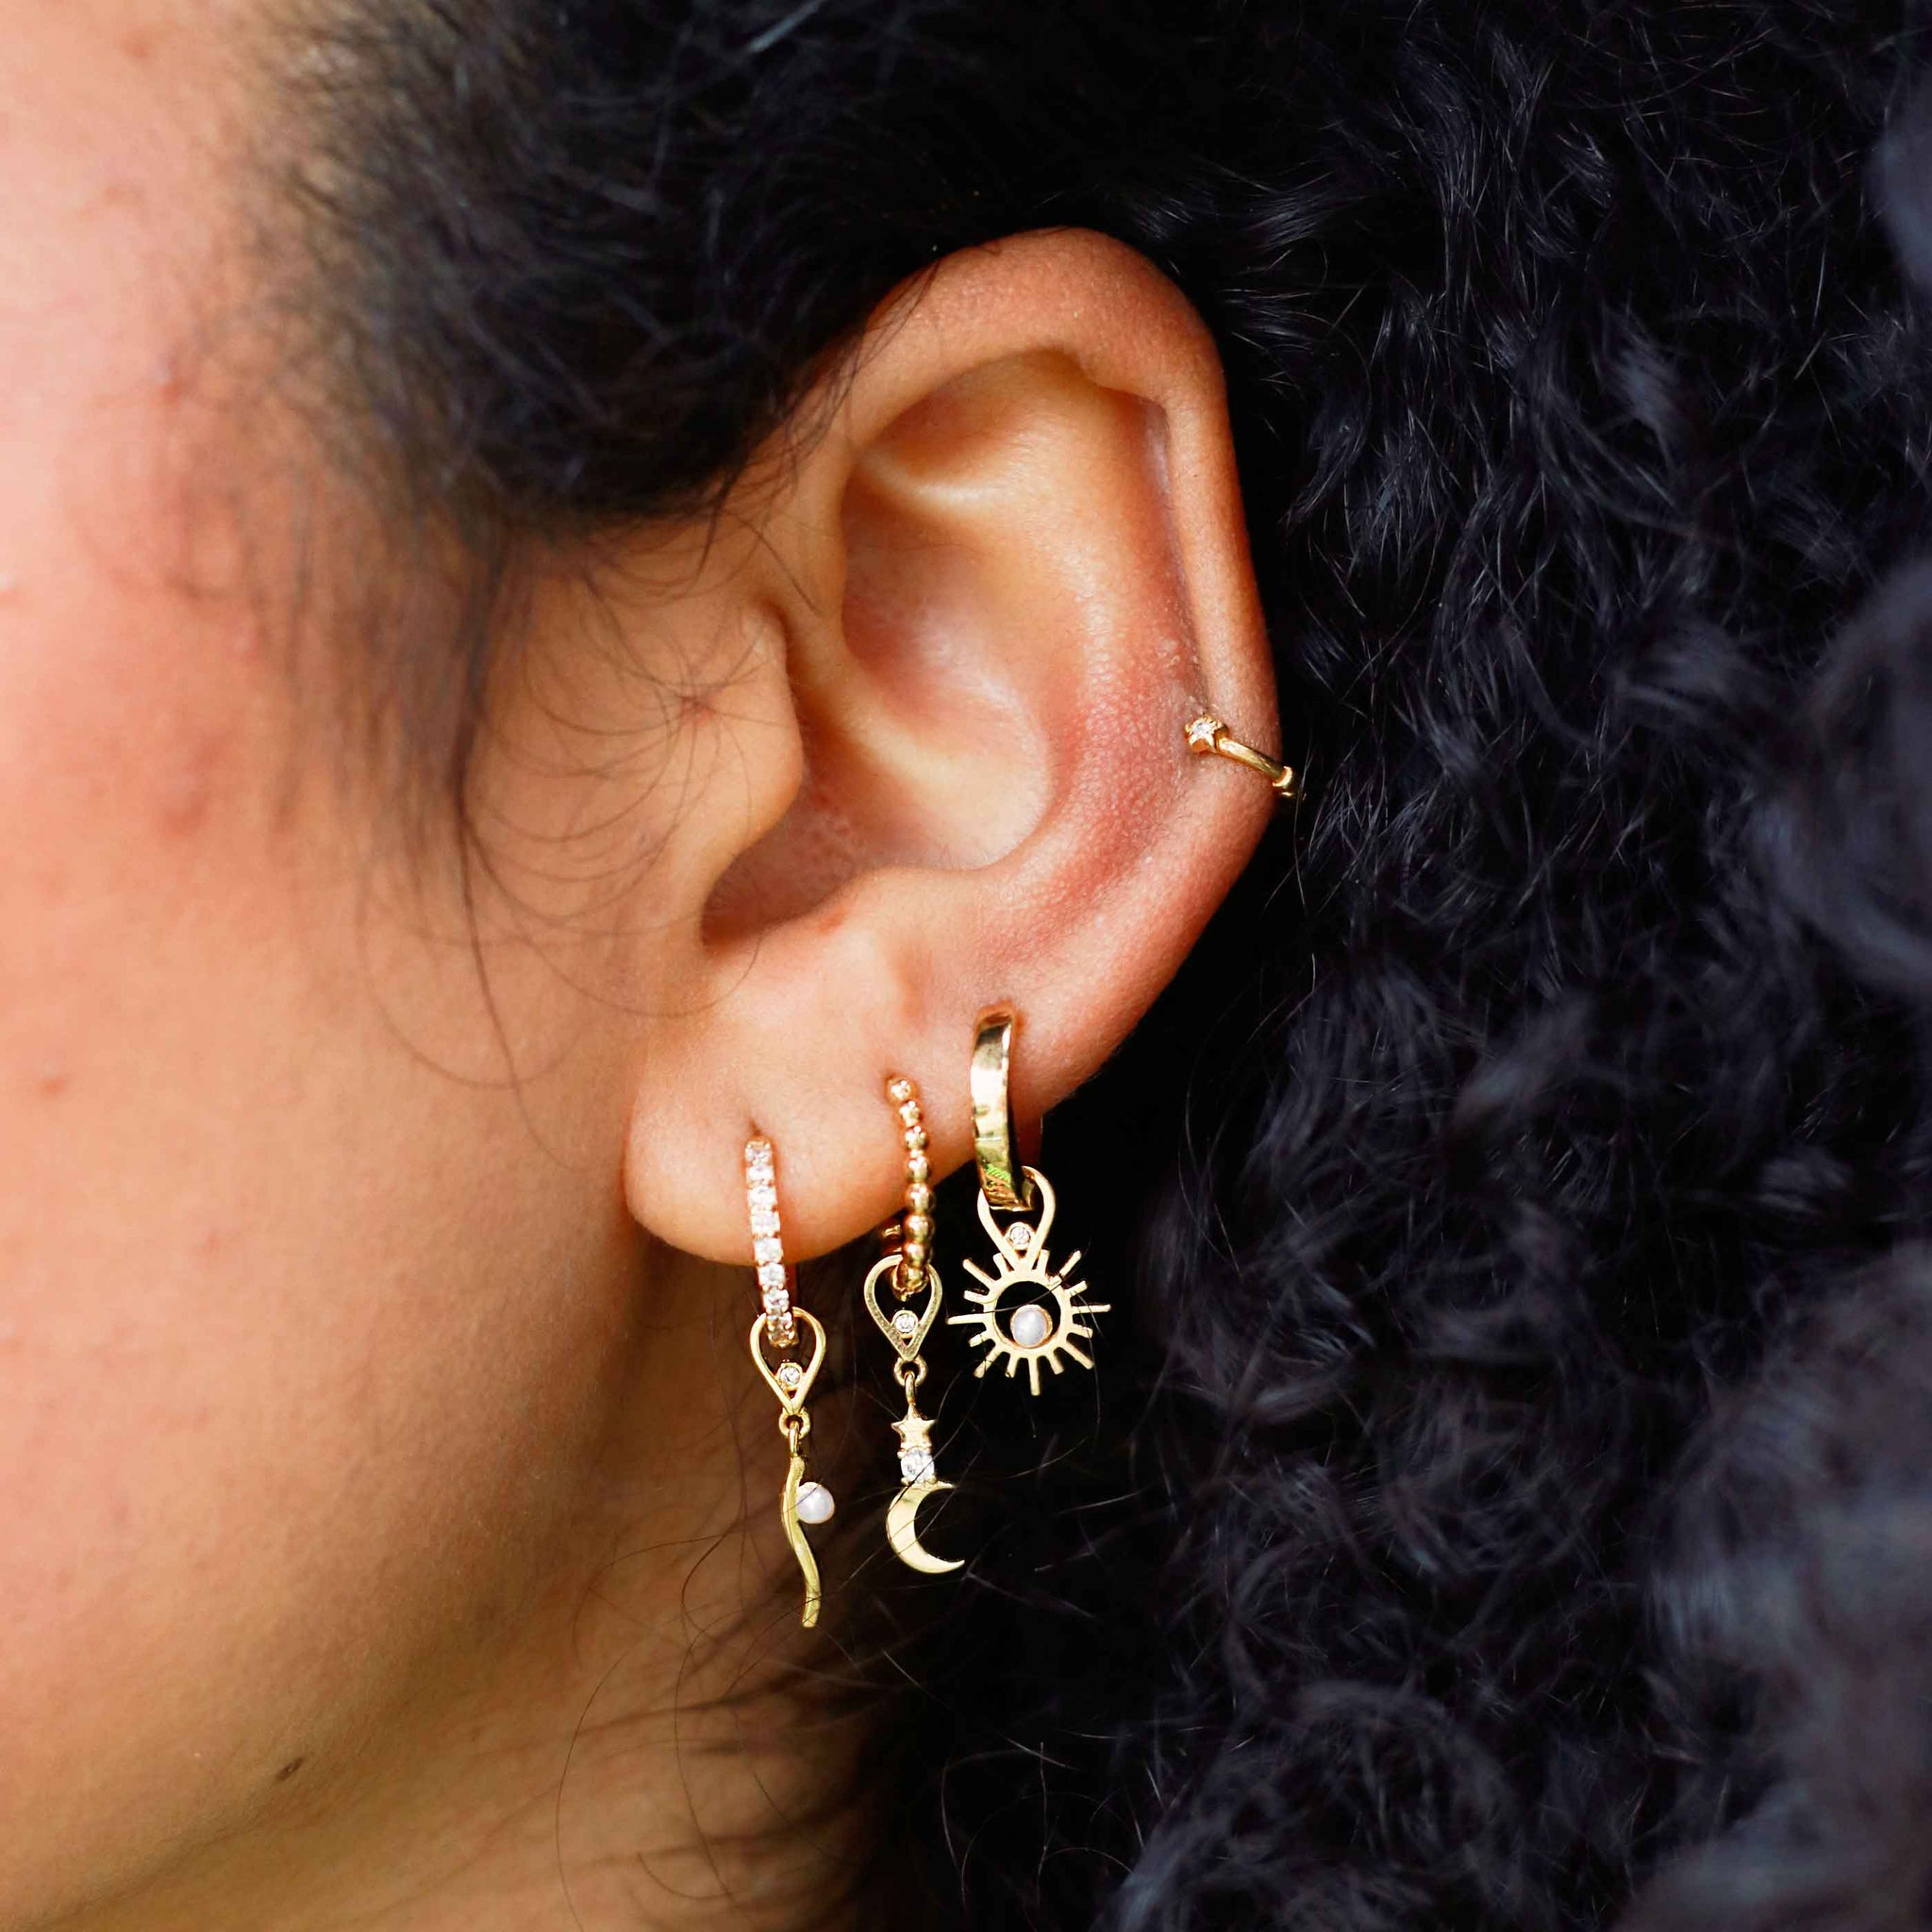 Star & Moon Earring Charm in Gold worn with beaded base hoop